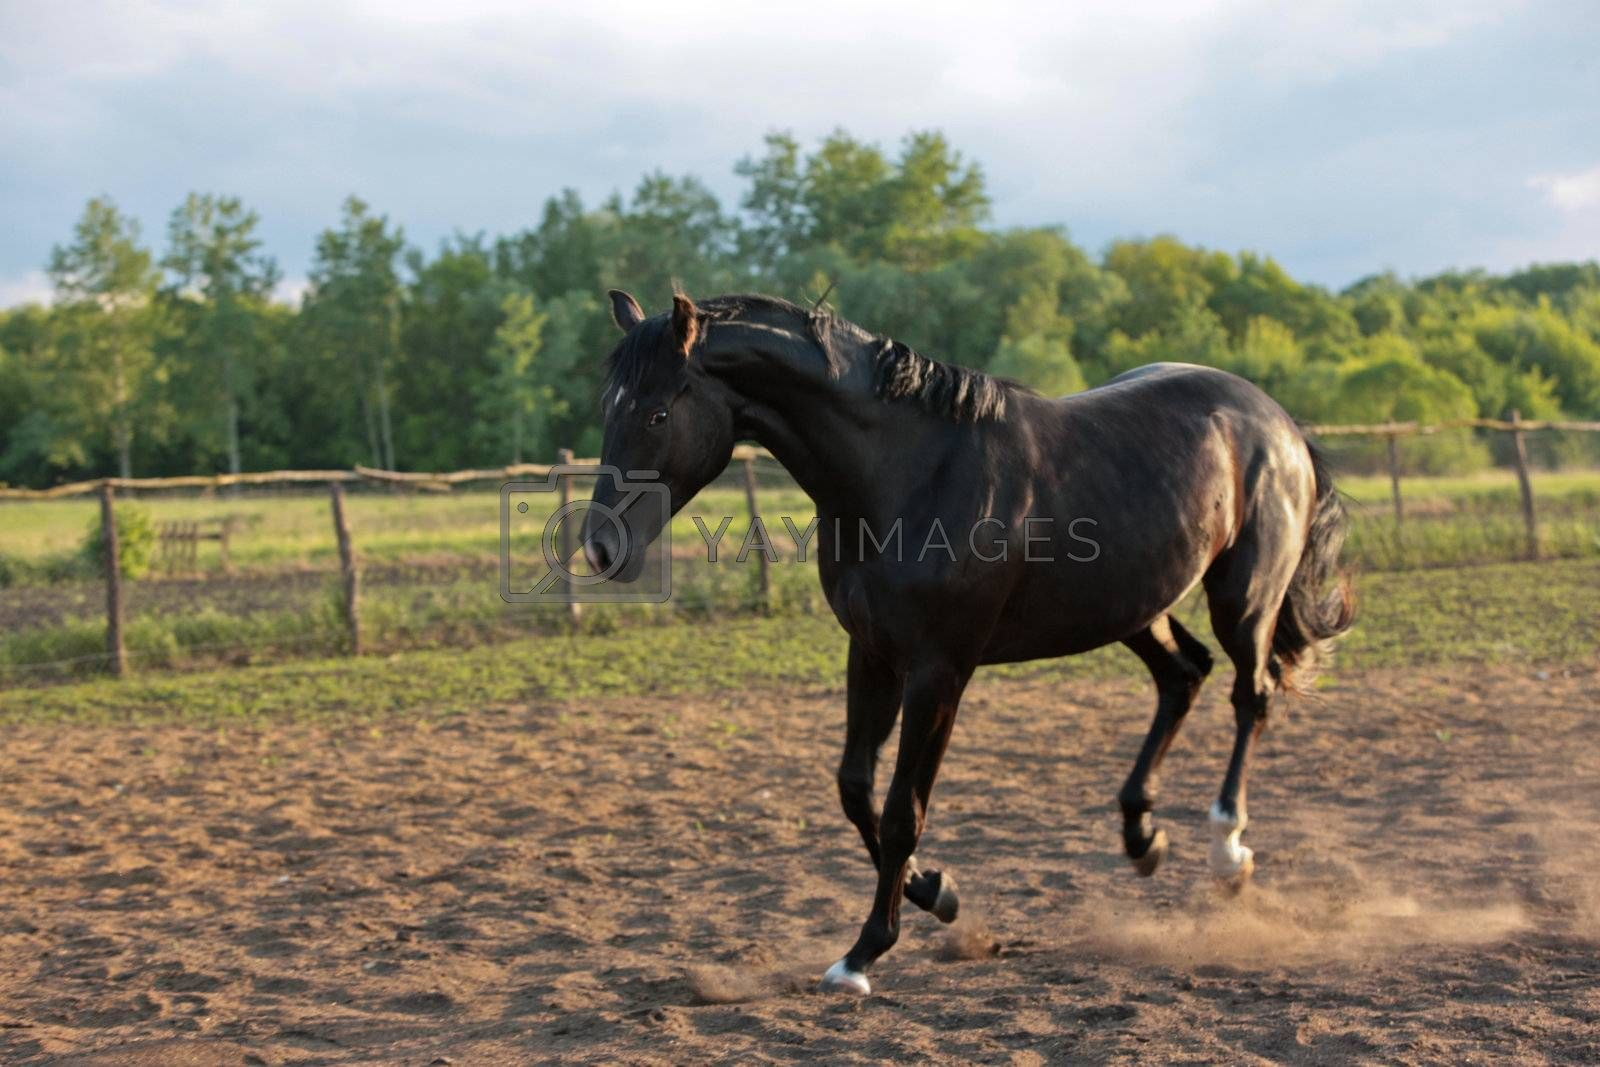 Royalty free image of horse by agg